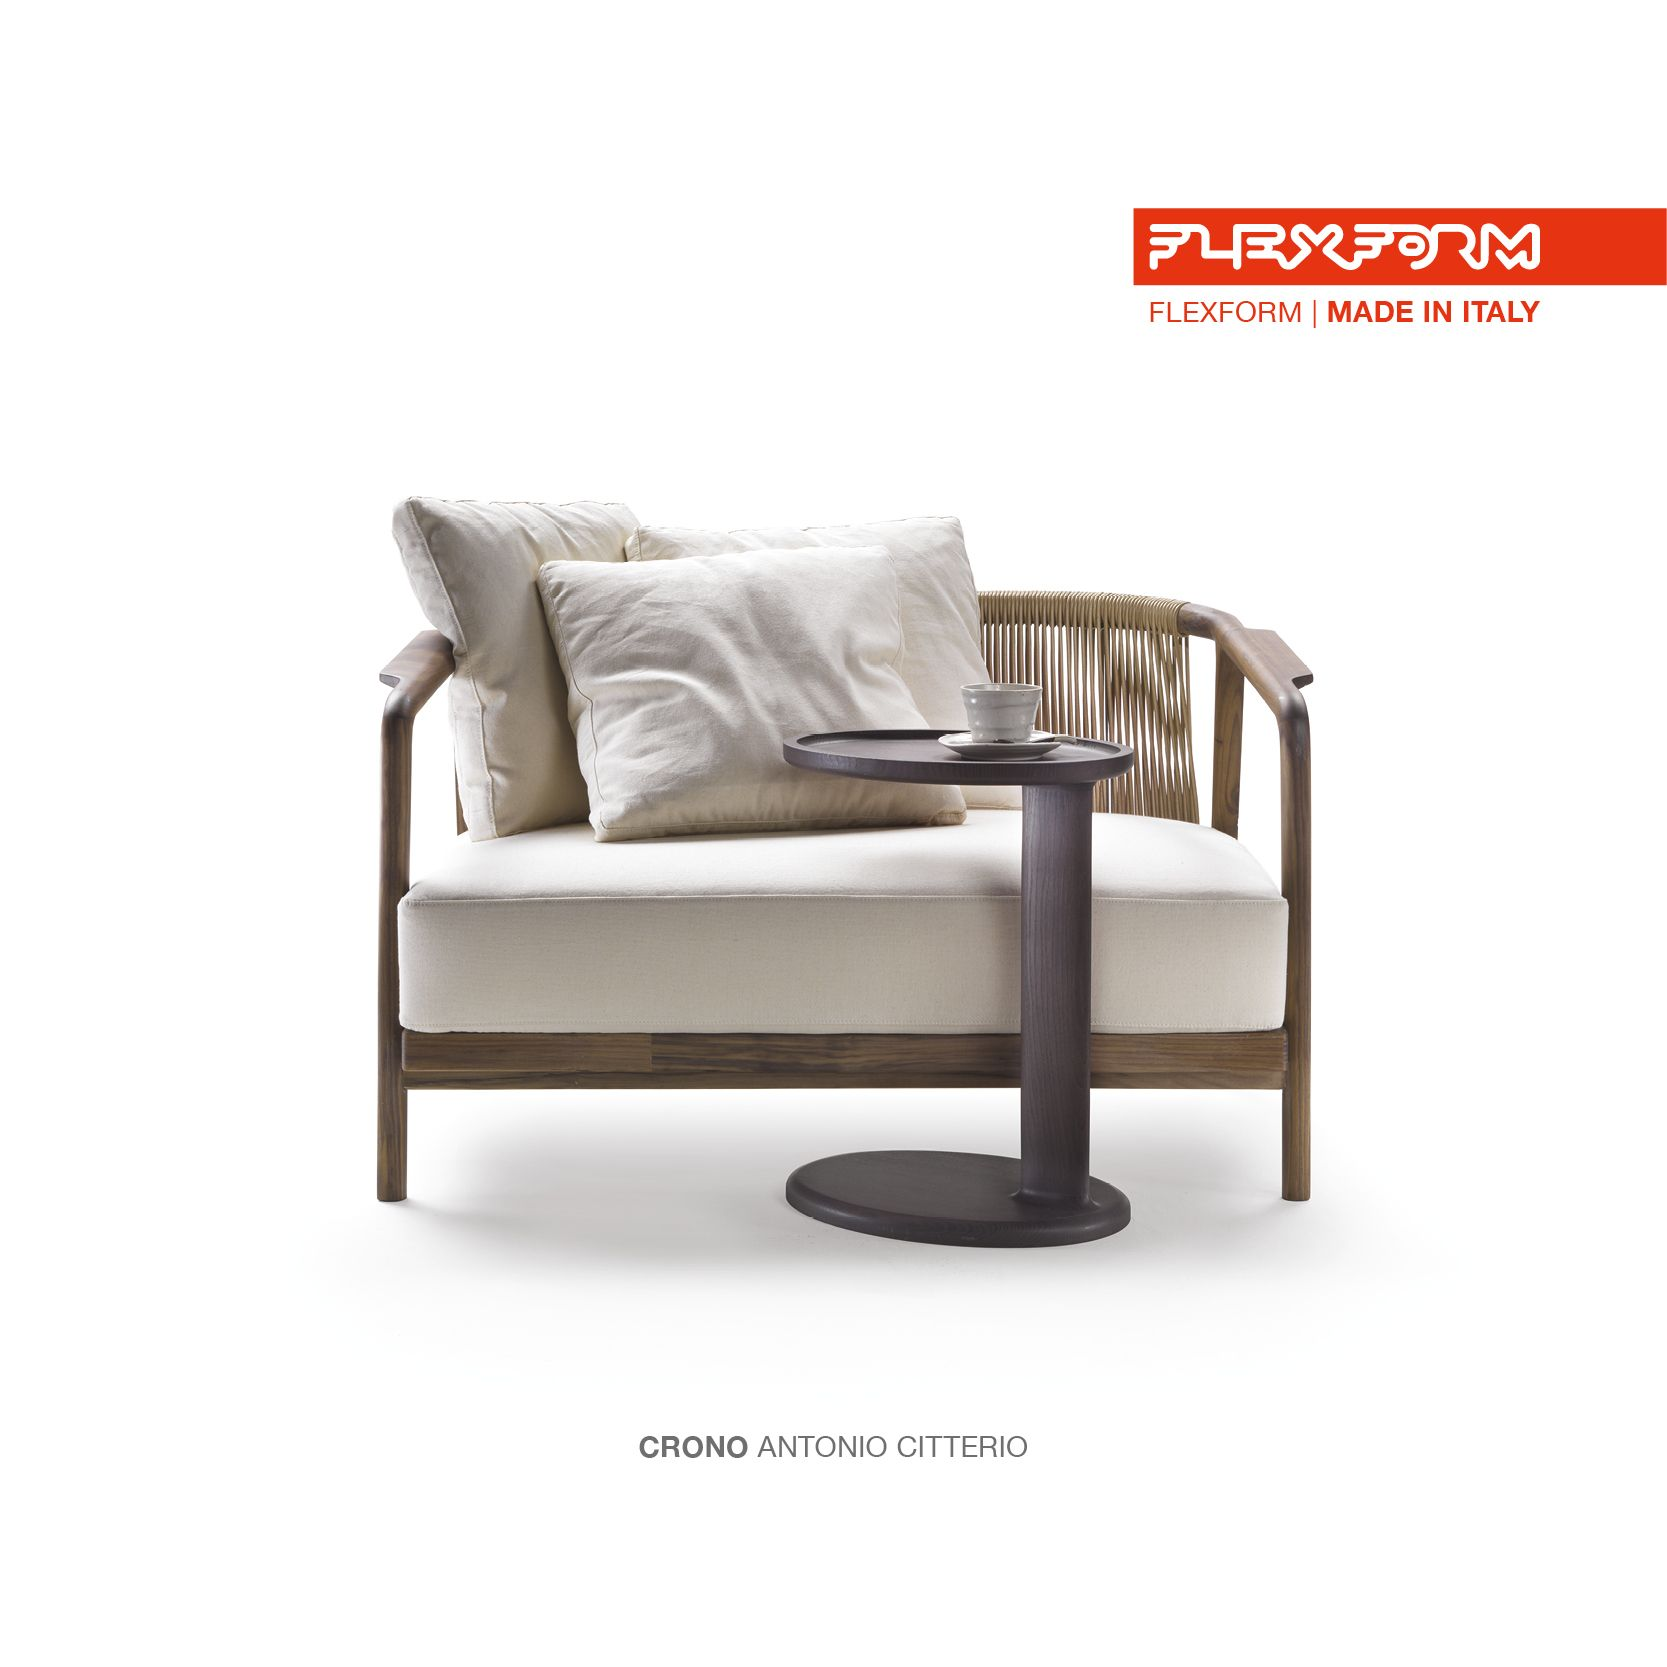 Flexform Sessel Flexform Crono Small Sofa Design Antonio Citterio Admired By